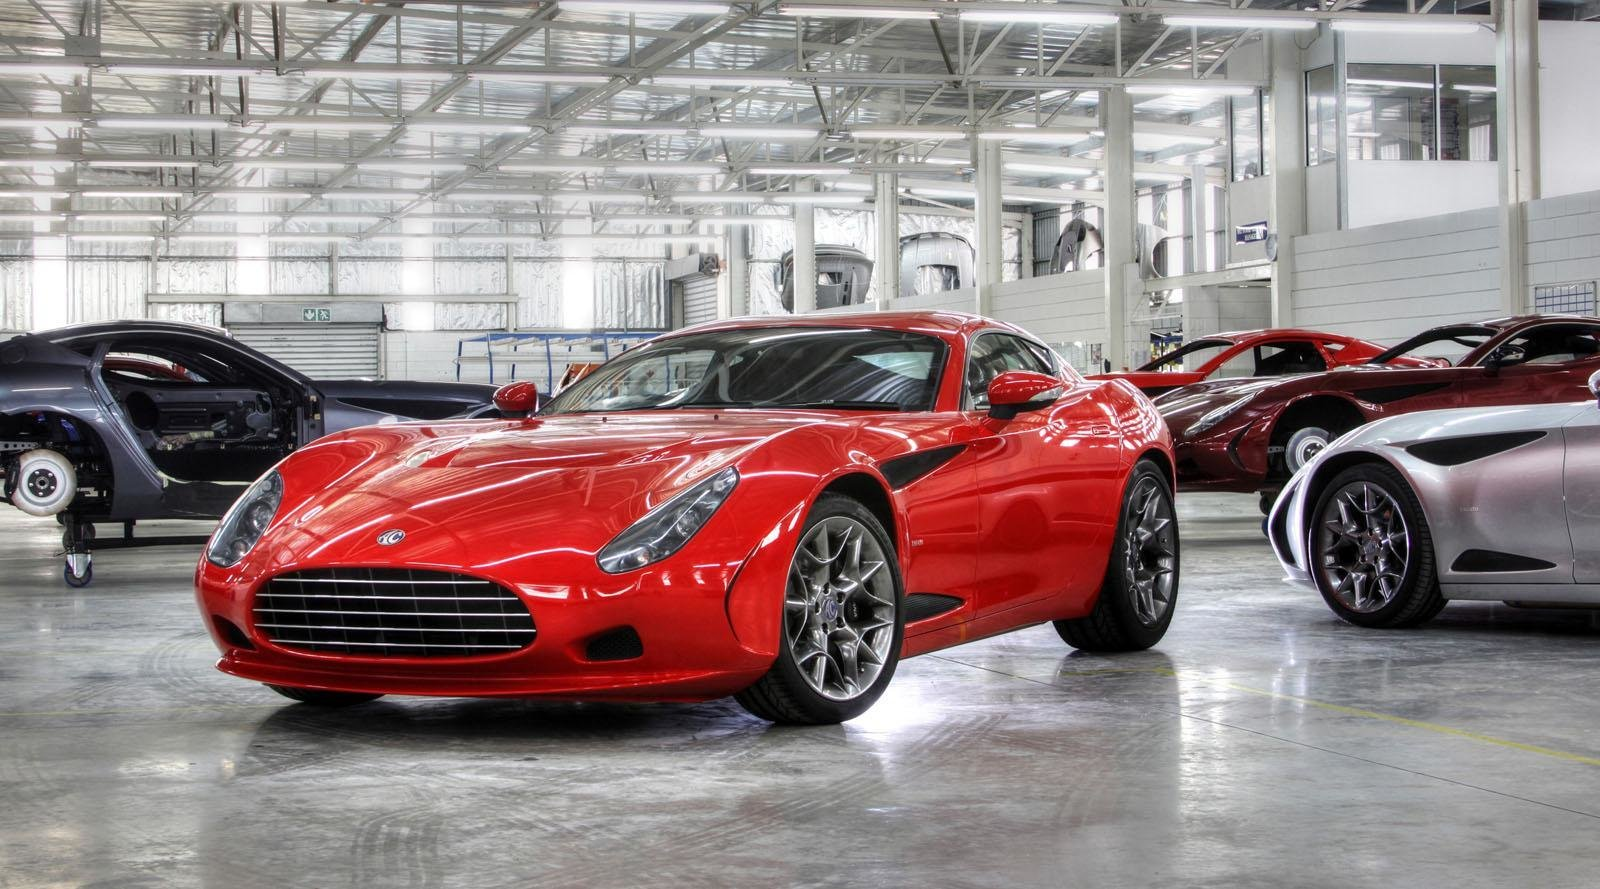 New 2012 Ac 378 Gt Zagato Review Top Speed On This Month